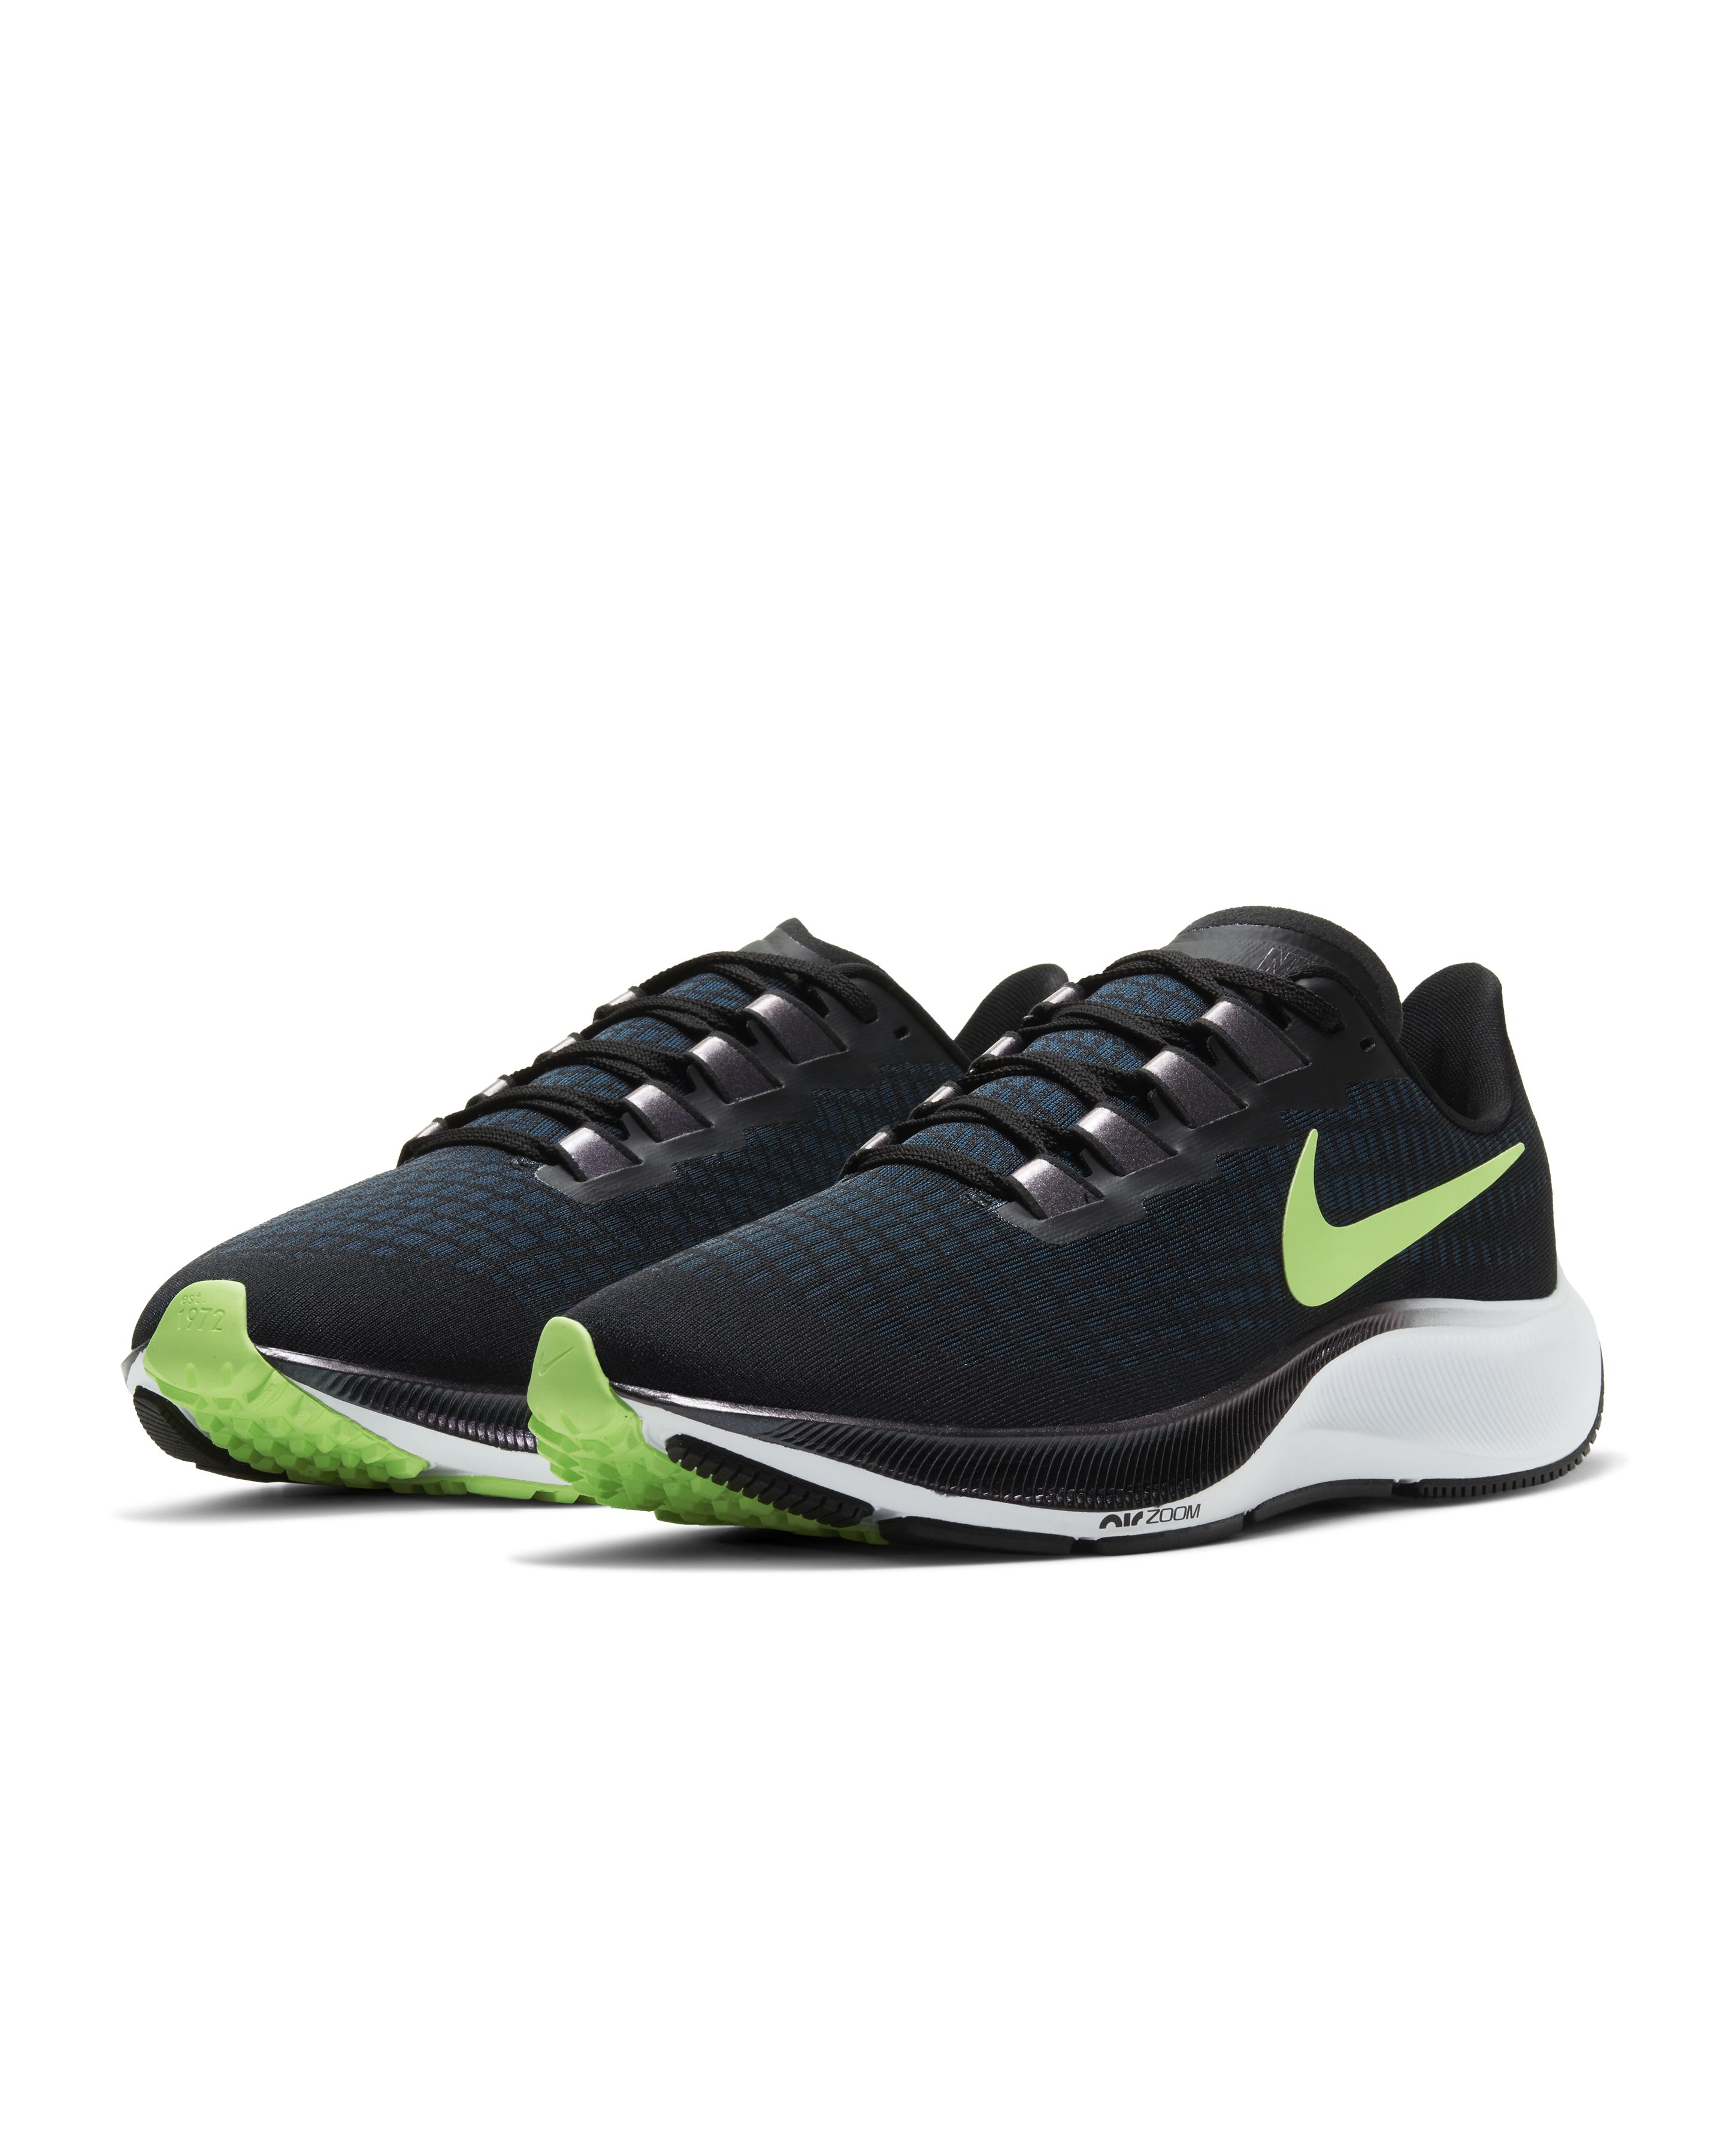 Nike Air Zoom Pegasus 37 Black/Valerian Blue/Spruce Aura/Ghost Green